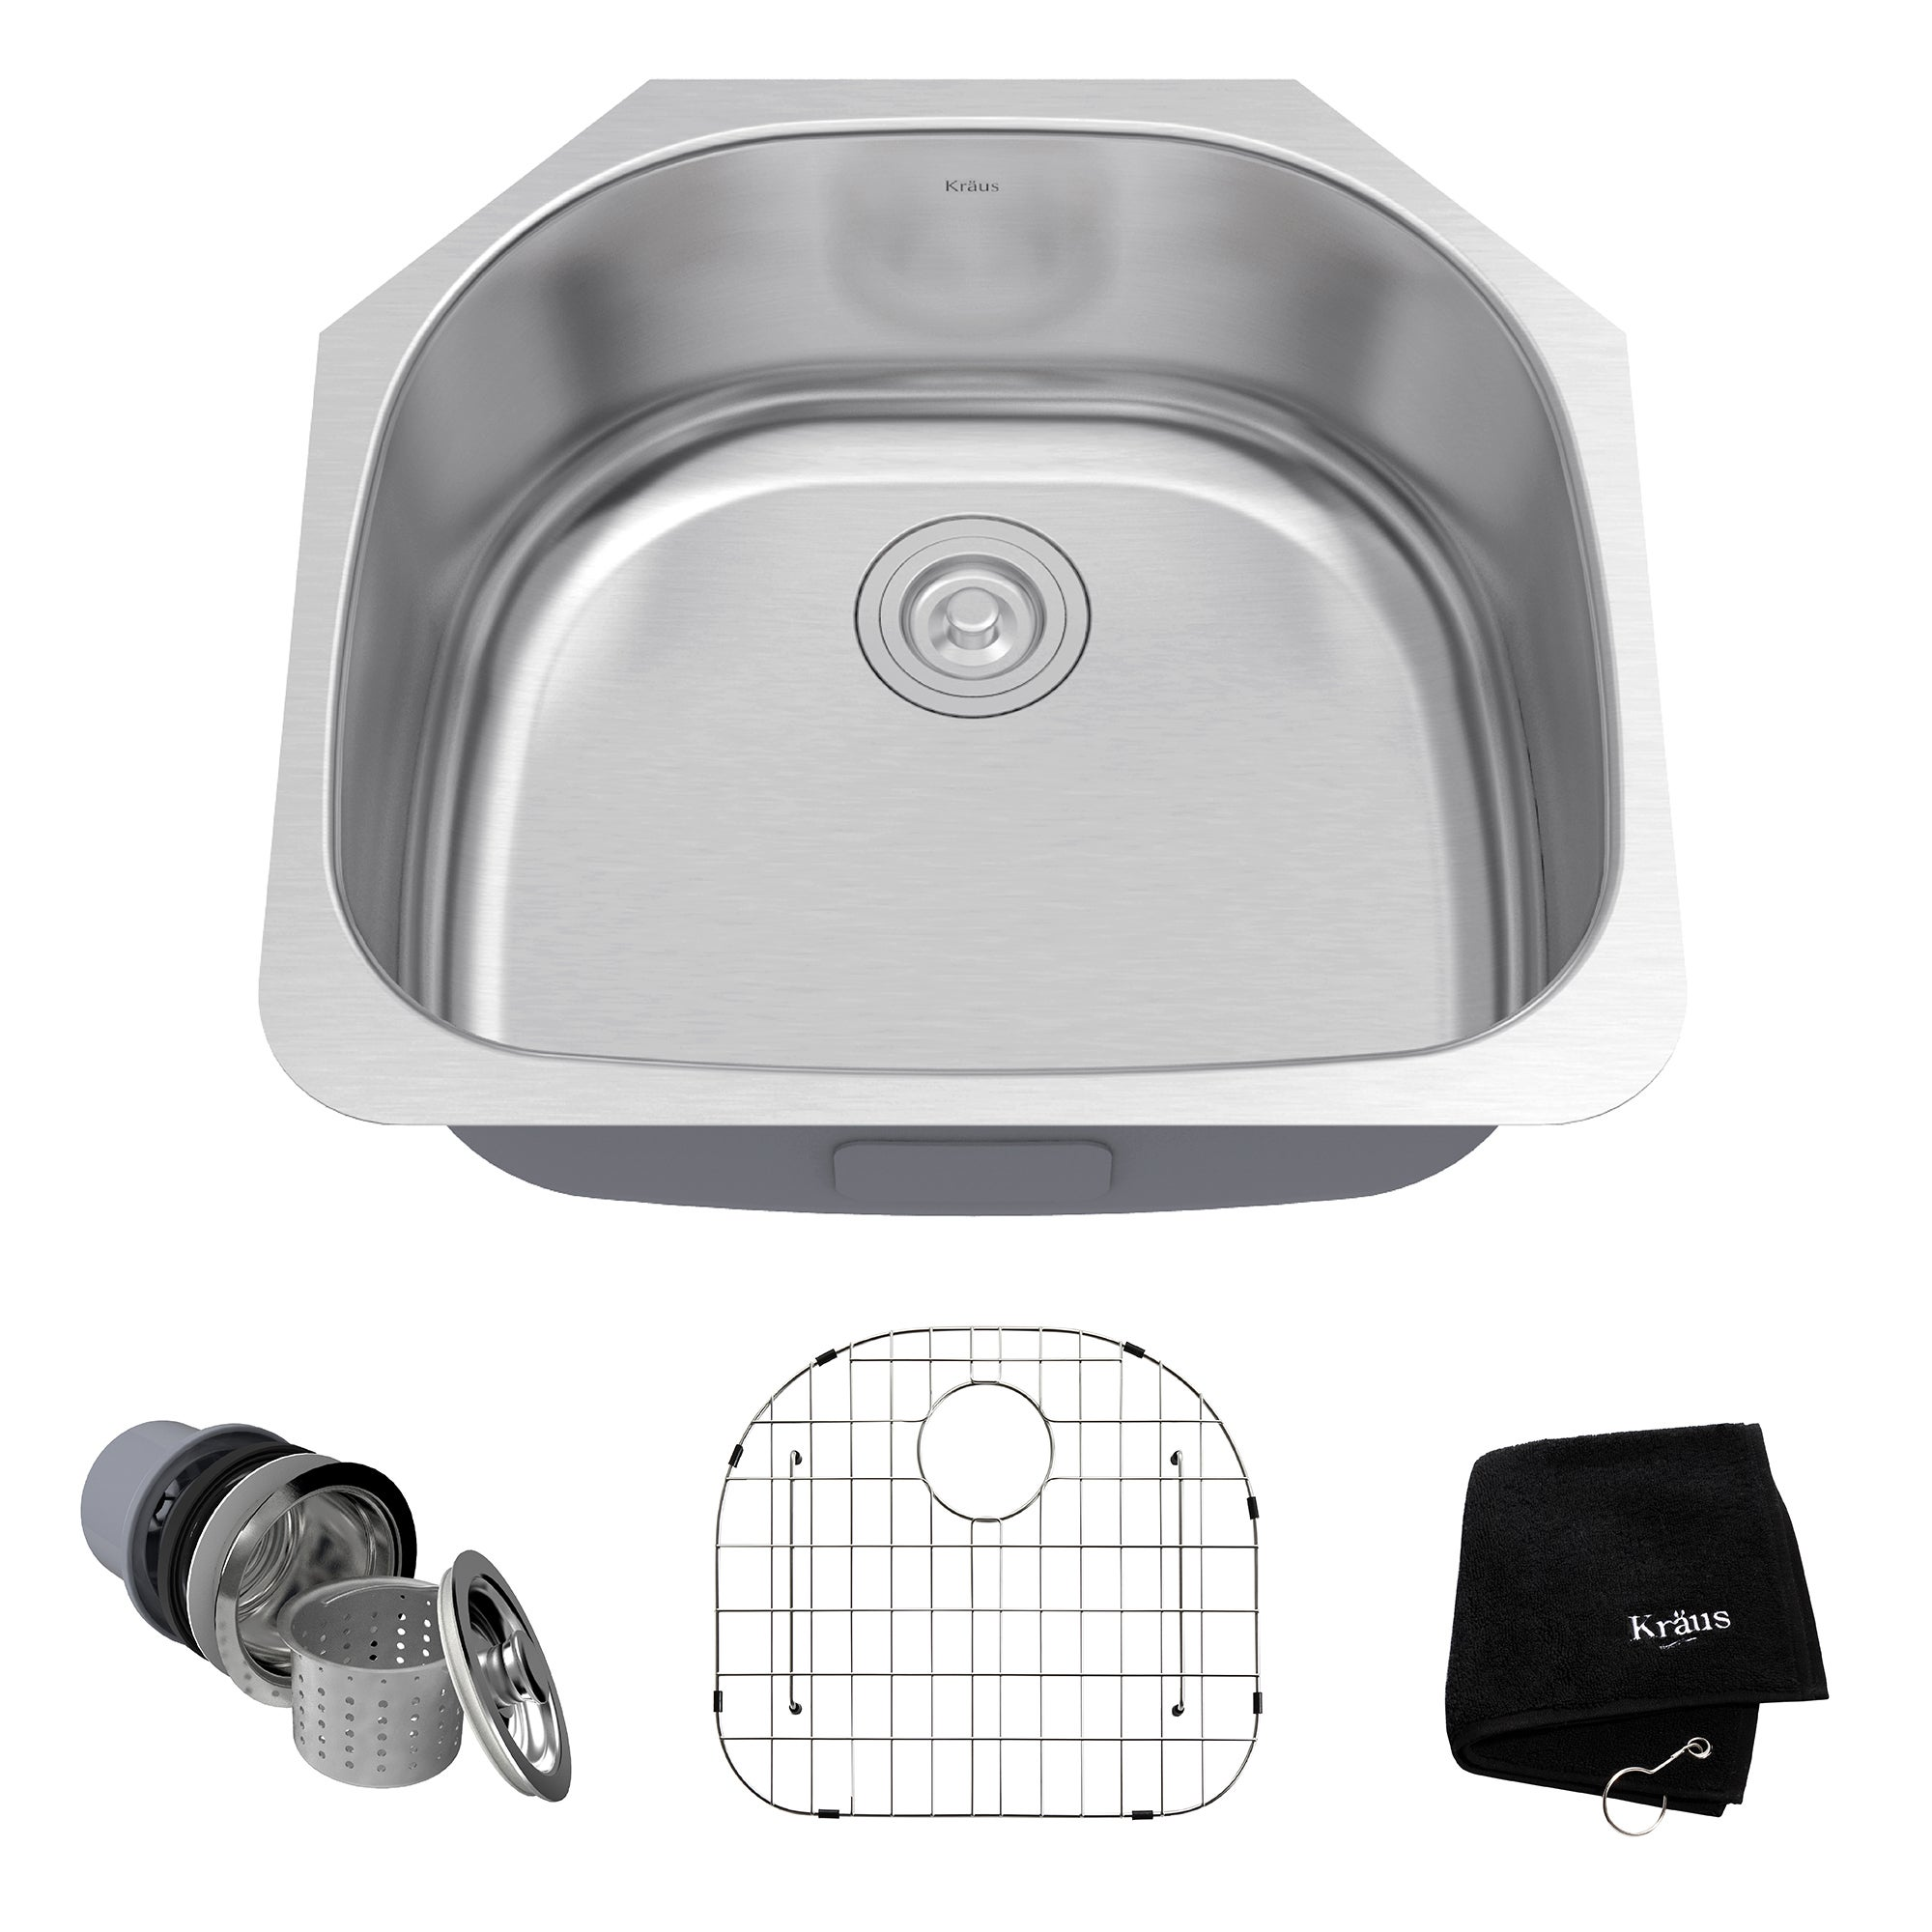 kraus 23 inch undermount single bowl stainless steel kitchen sink with noisedefend soundproofing   free shipping today   overstock com   12264211 kraus 23 inch undermount single bowl stainless steel kitchen sink      rh   overstock com